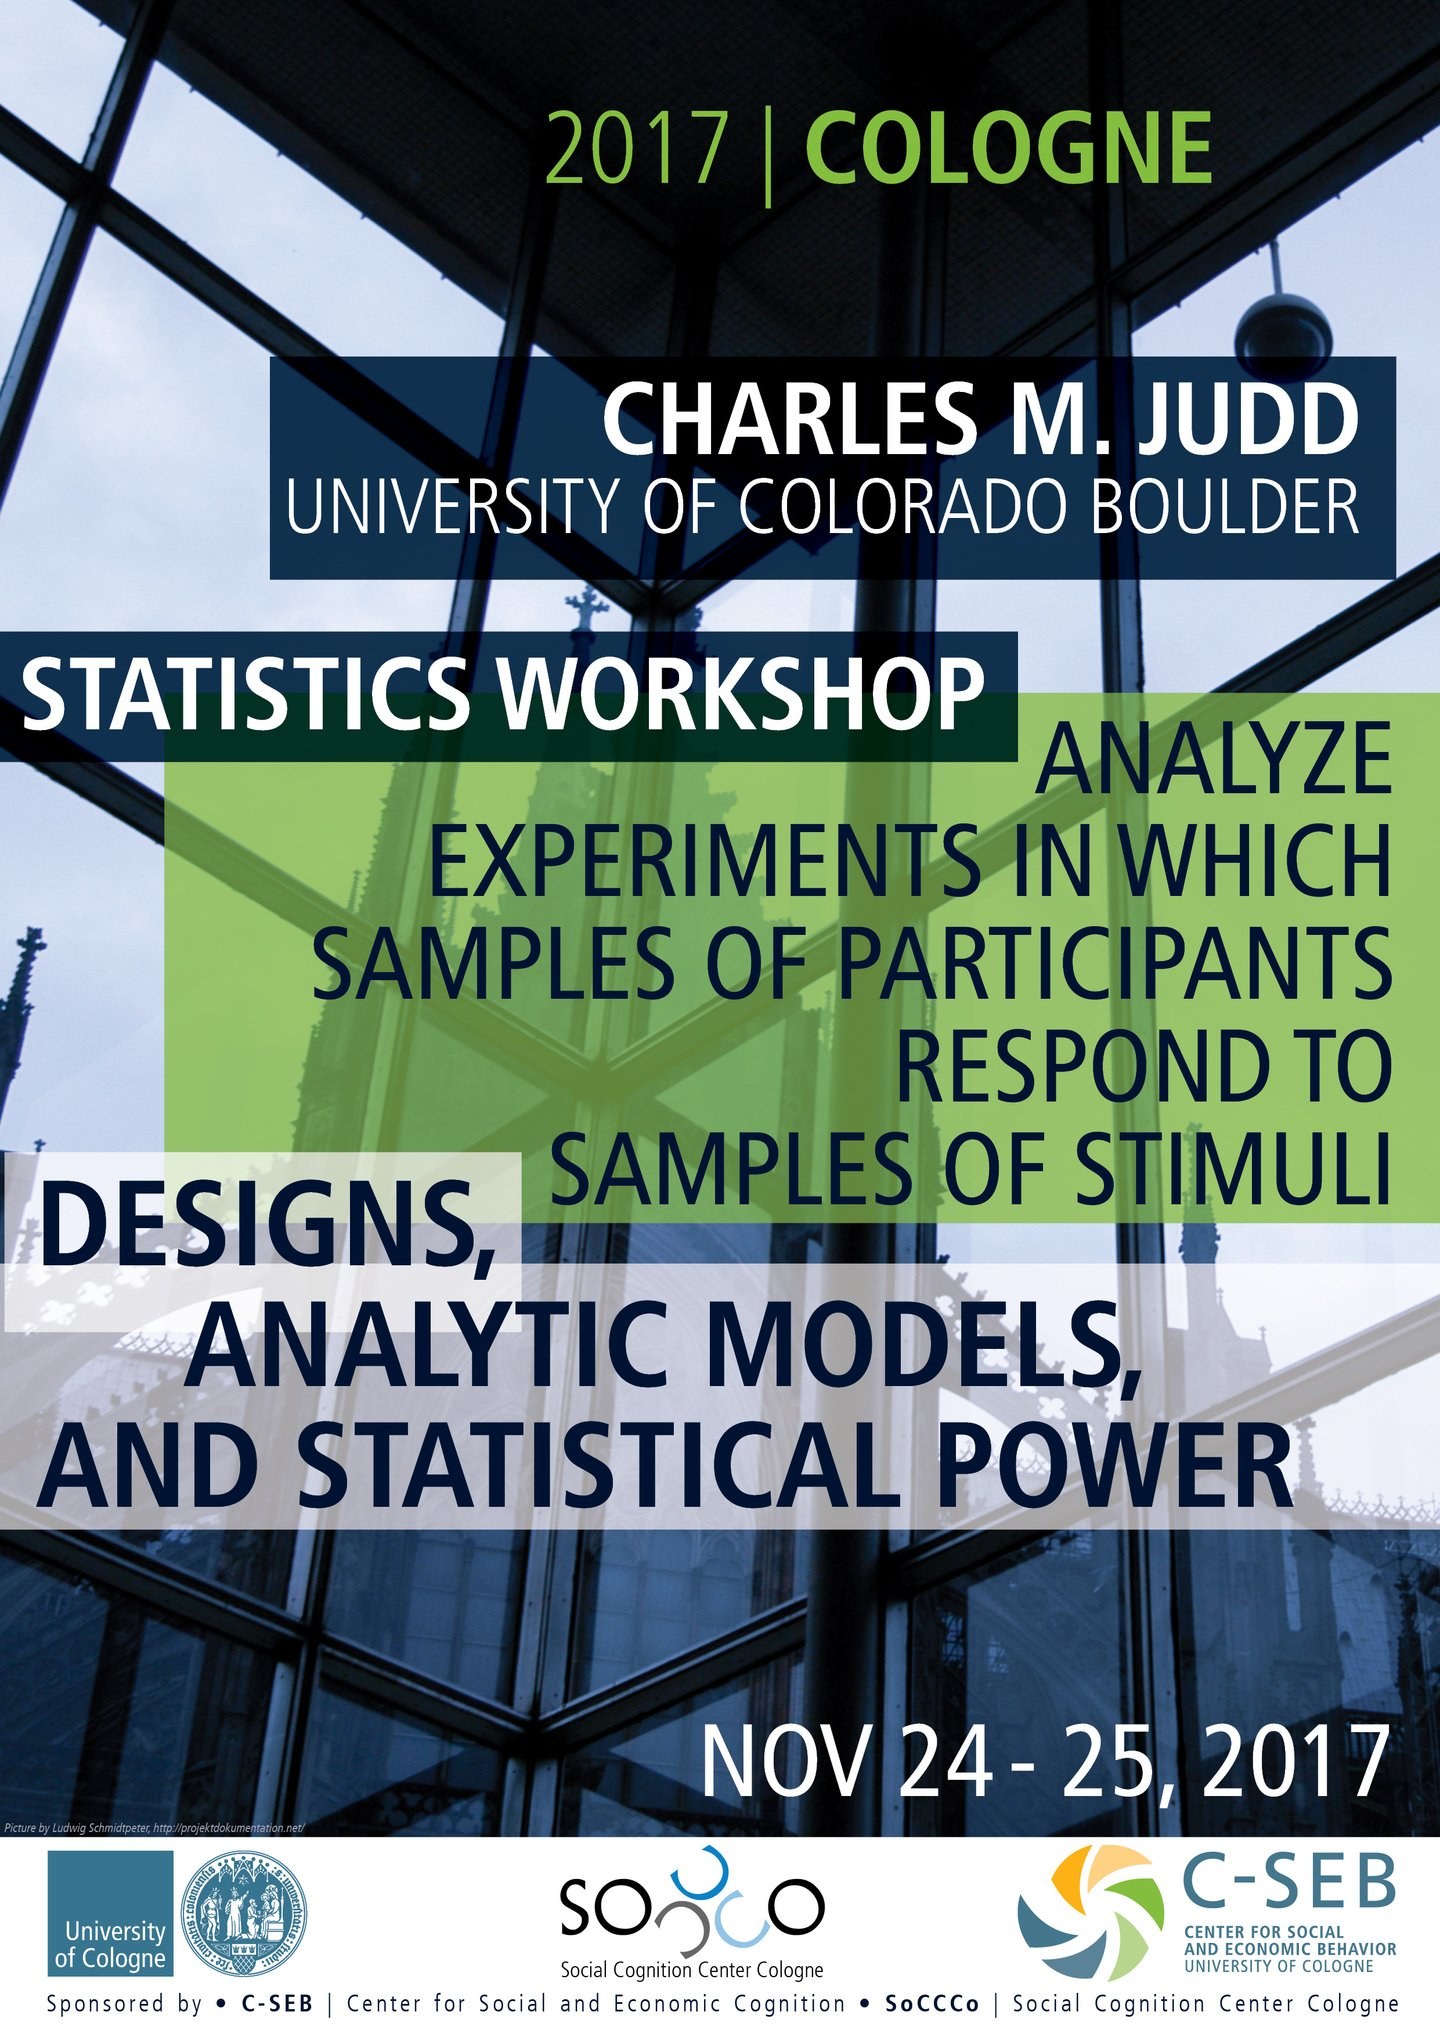 Statistics Workshop | Charles M. Judd